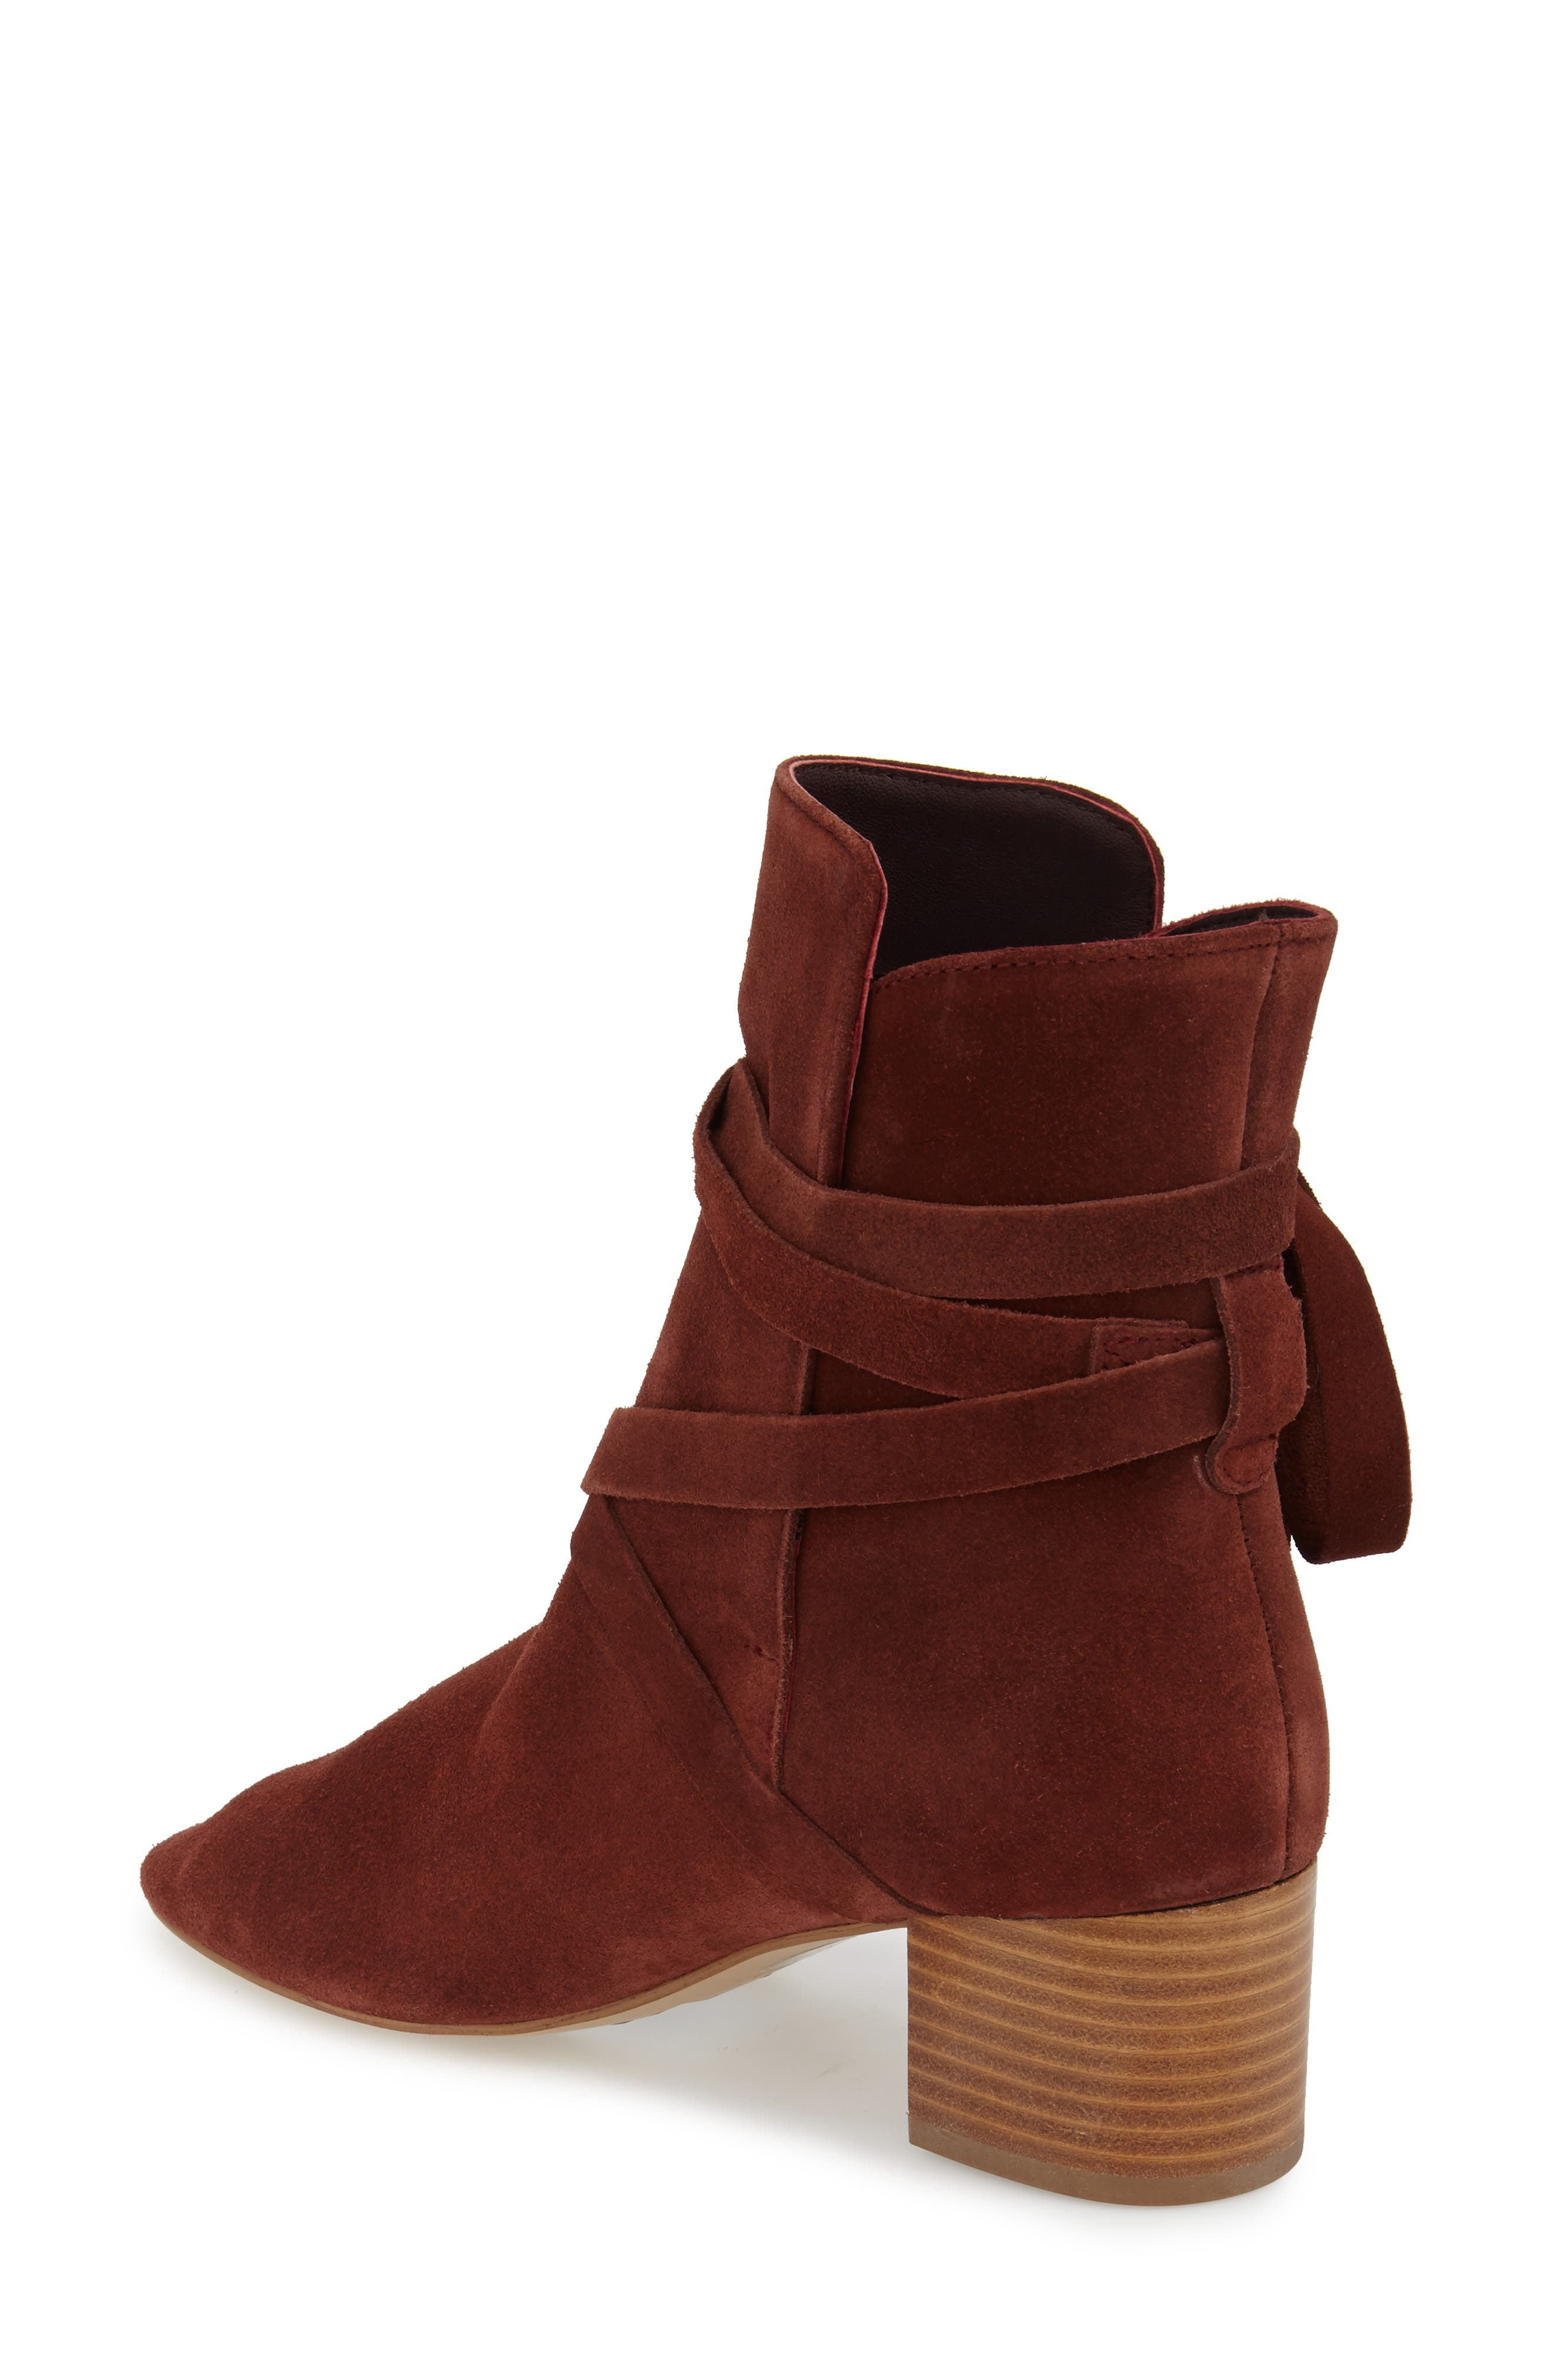 'Anabel' Lace-Up Boots,                             Alternate thumbnail 3, color,                             220